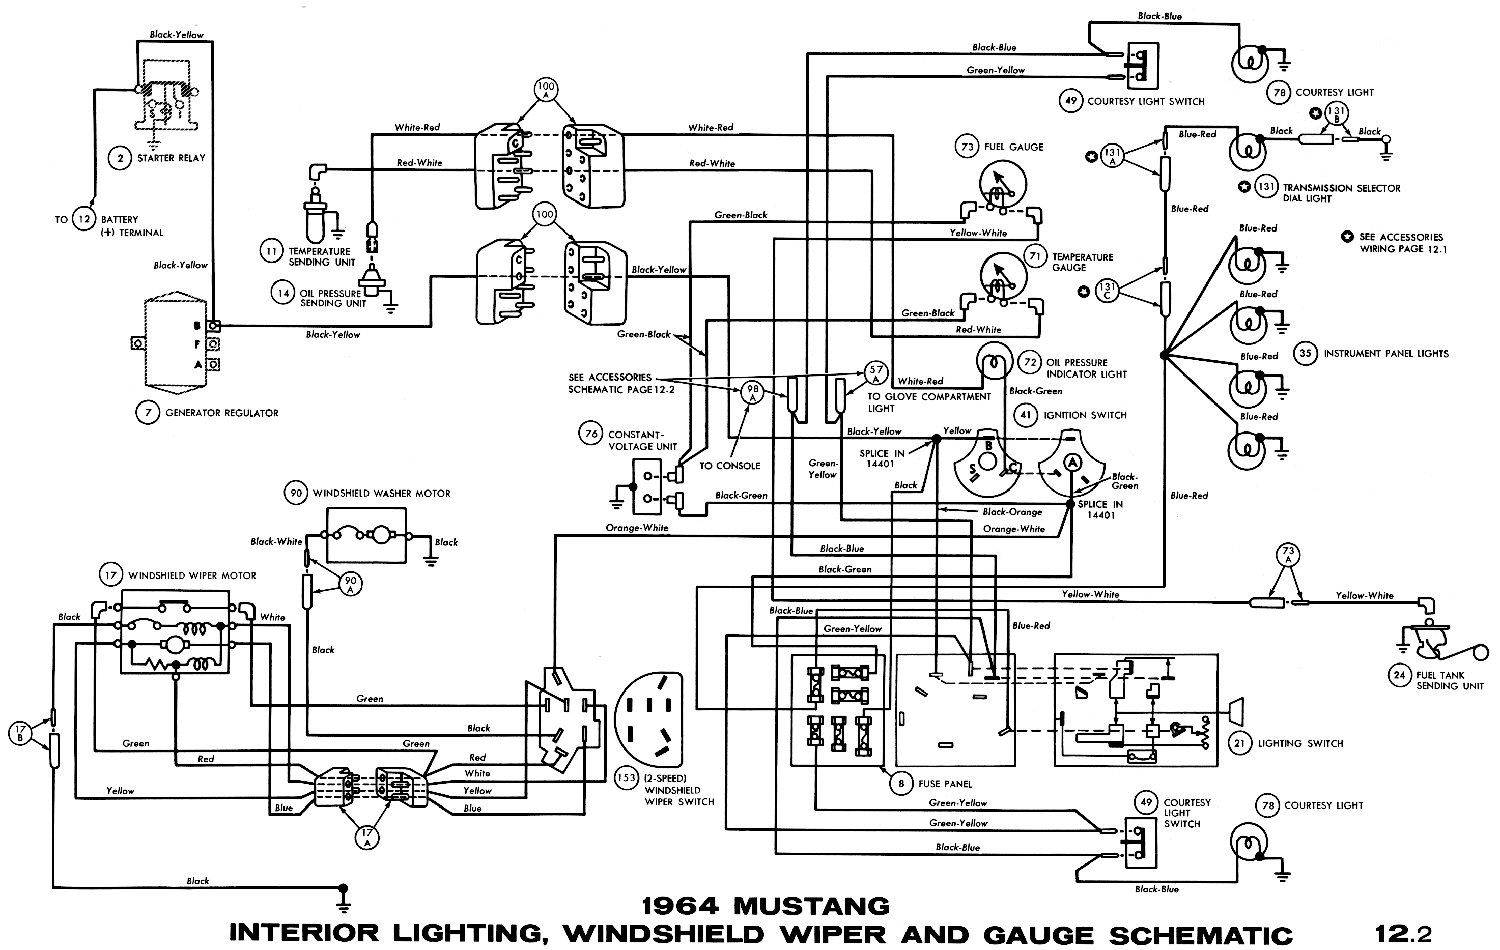 1968 Mustang Wiring Diagram Vacuum Schematics further Ford F250 How To Replace Your Side Window 361121 furthermore Mustang el further 2004 Ford Expedition Vacuum Diagram also 1378140 Headlight Wiring. on 2000 ford mustang stereo wiring diagram